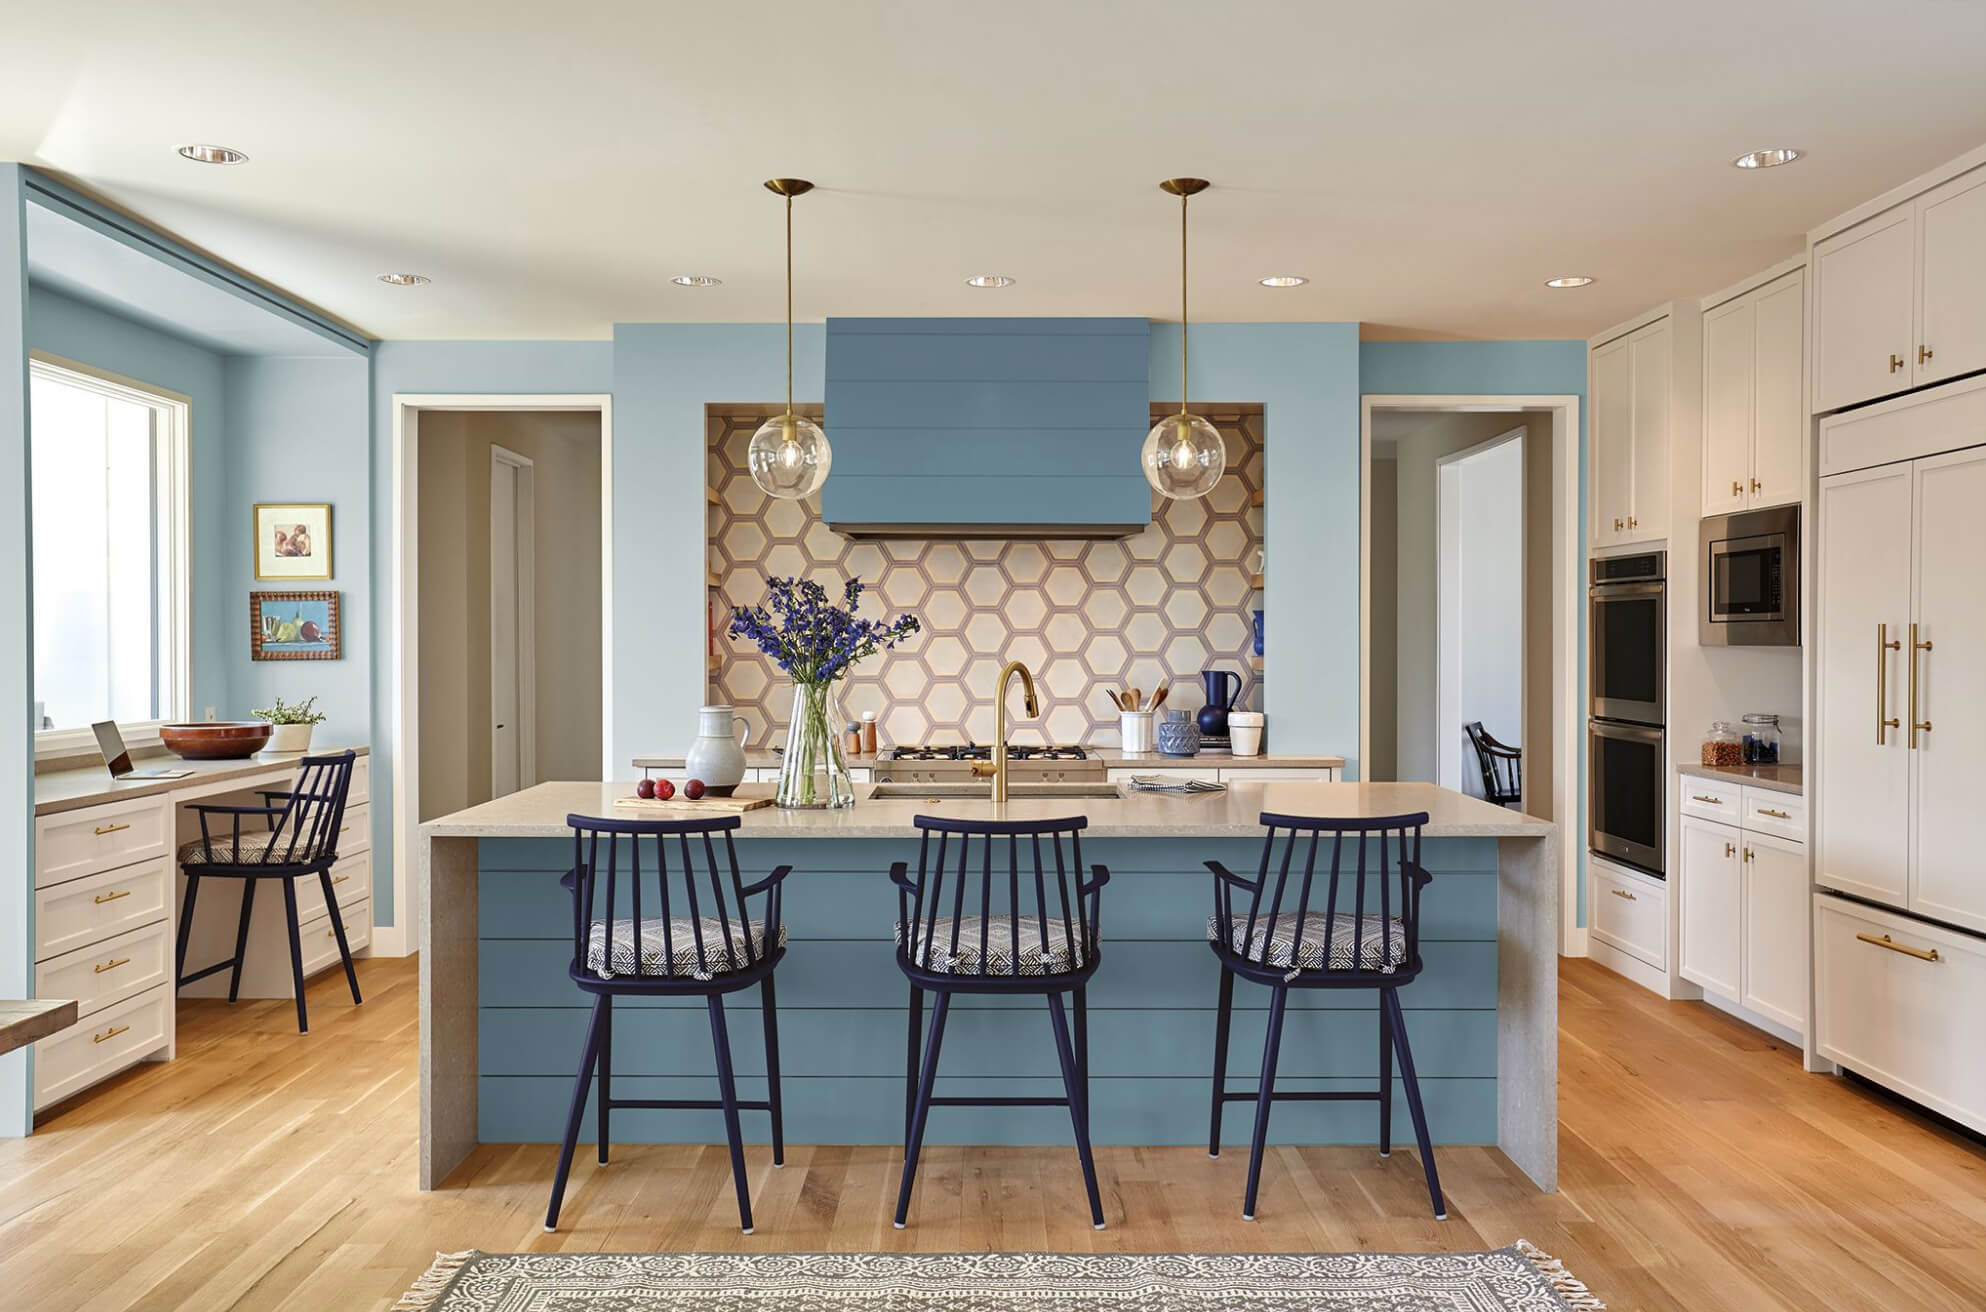 Decorating ideas for behr blueprint 2019 color of the - Behr color of the year ...